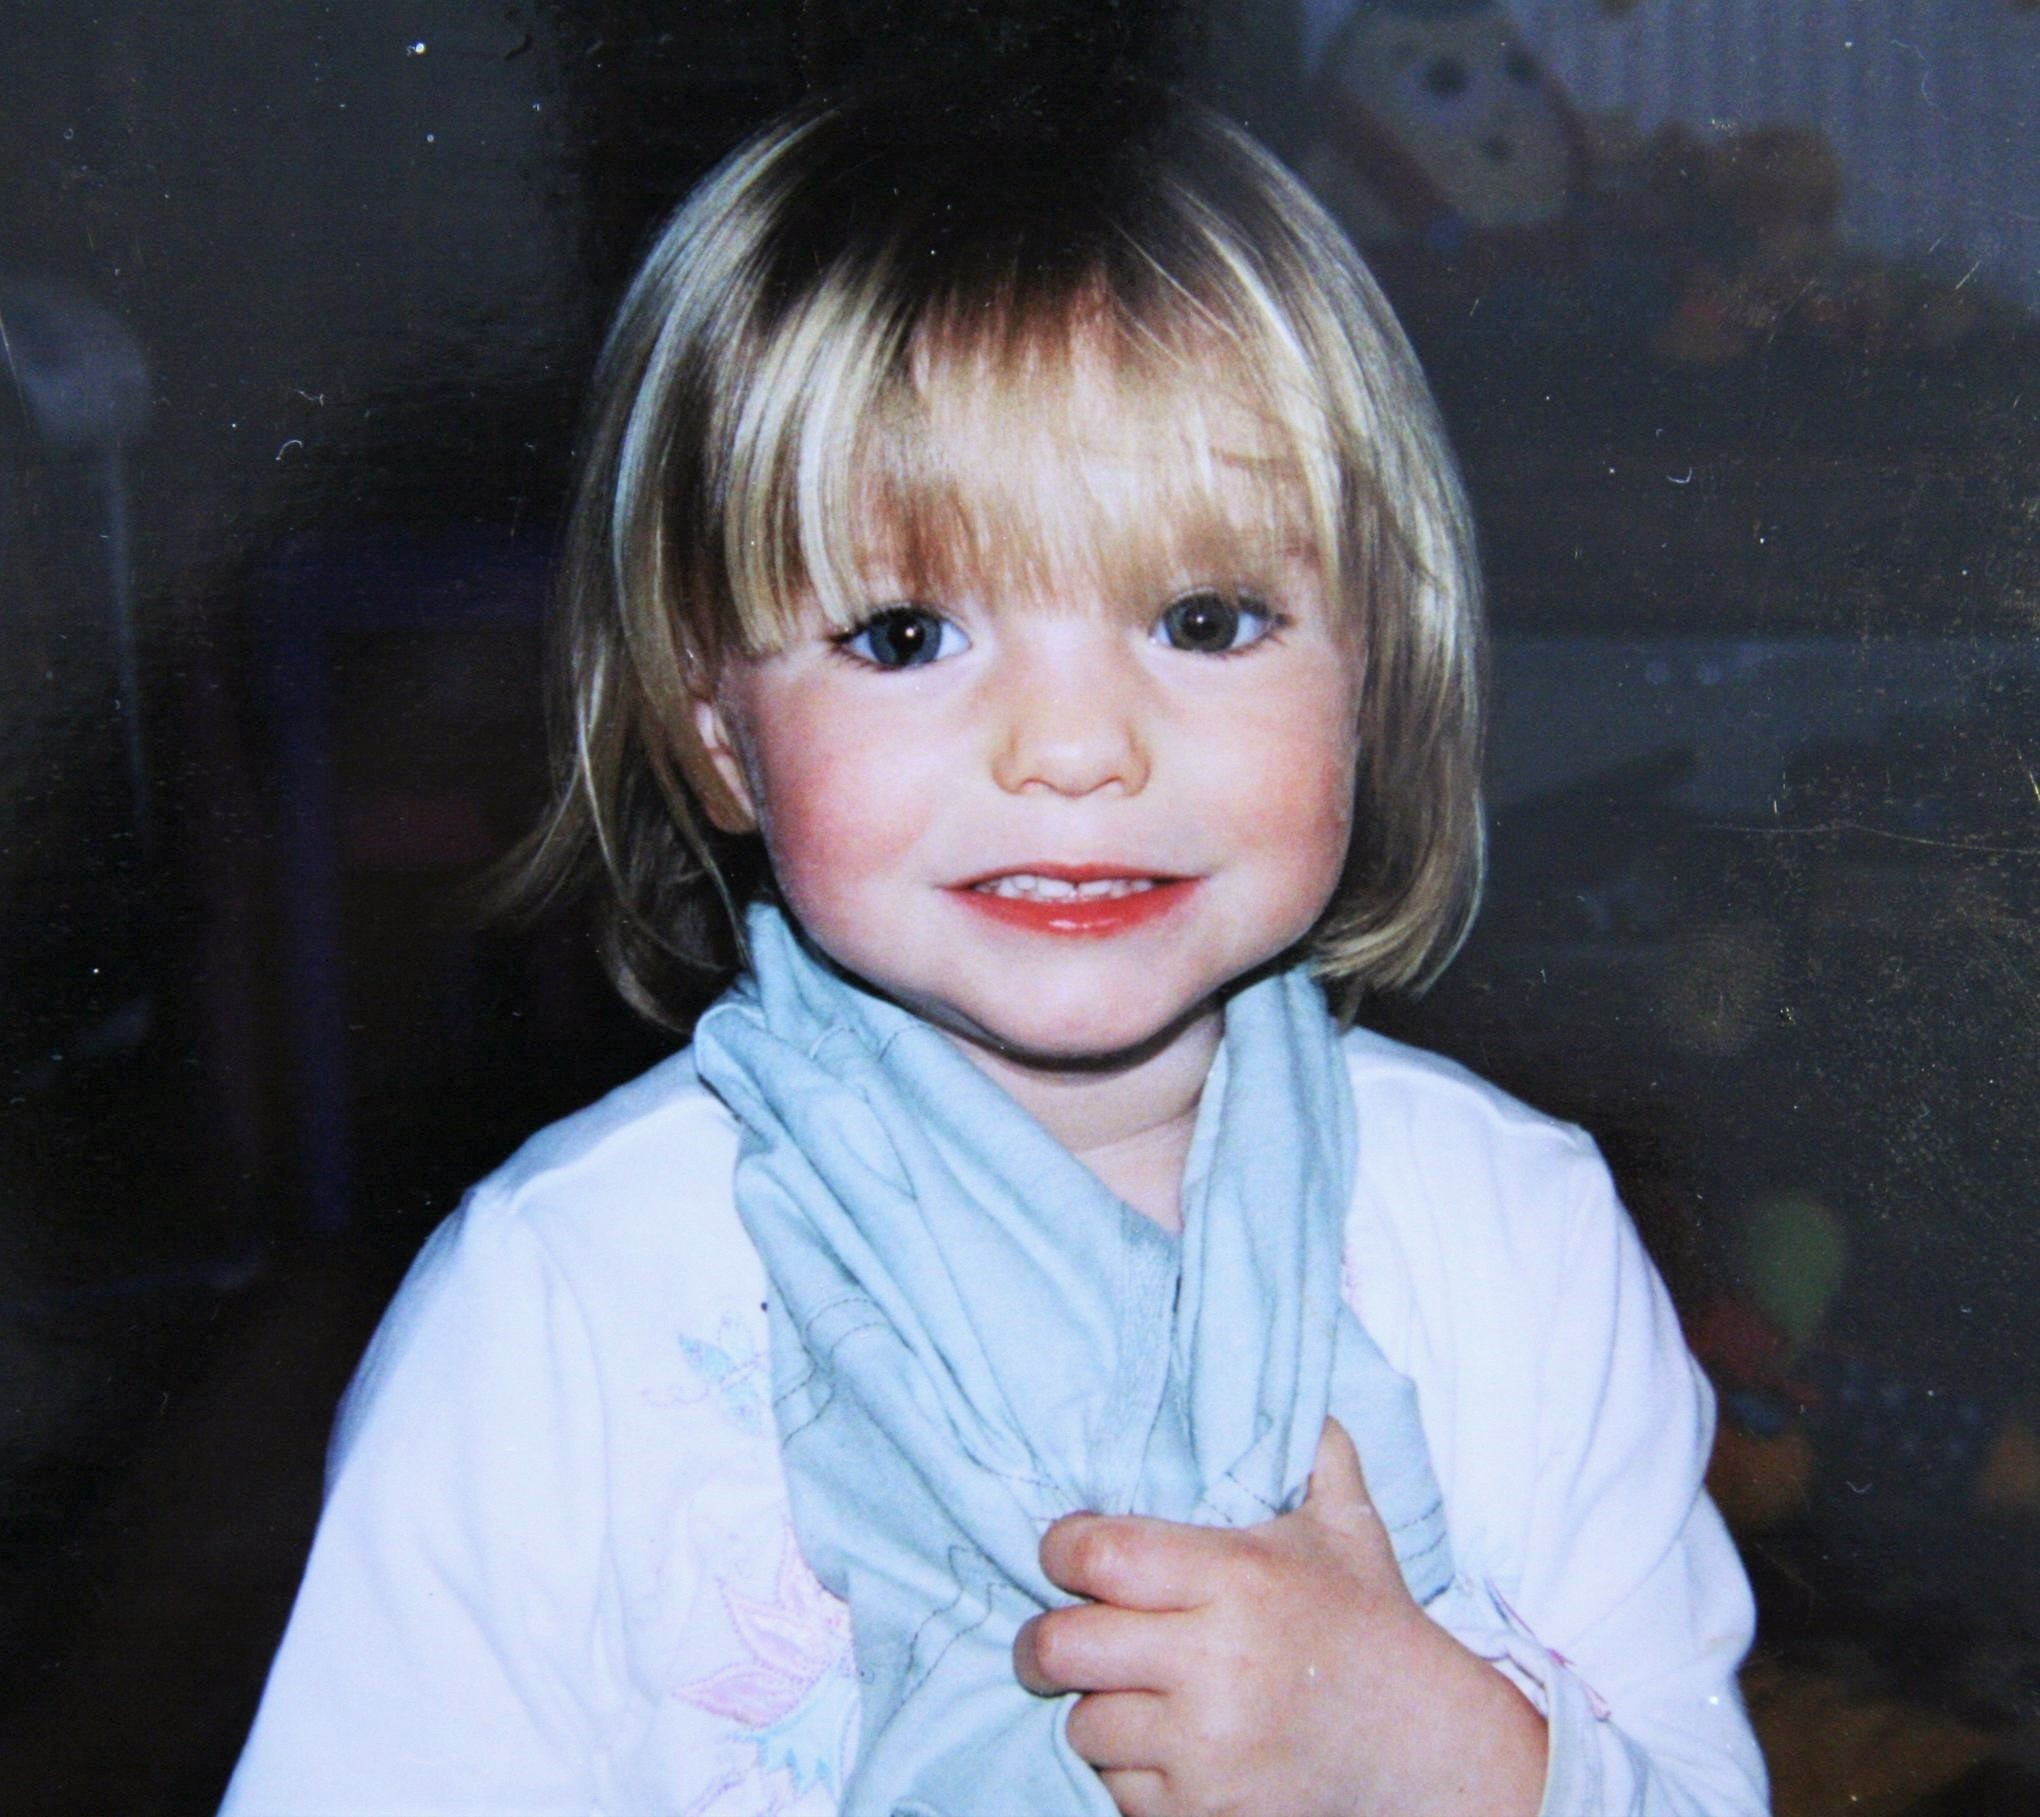 The Trailer for the New Netflix True Crime Doc the Disappearance of Madeleine Mccann Will Give You Goosebumps